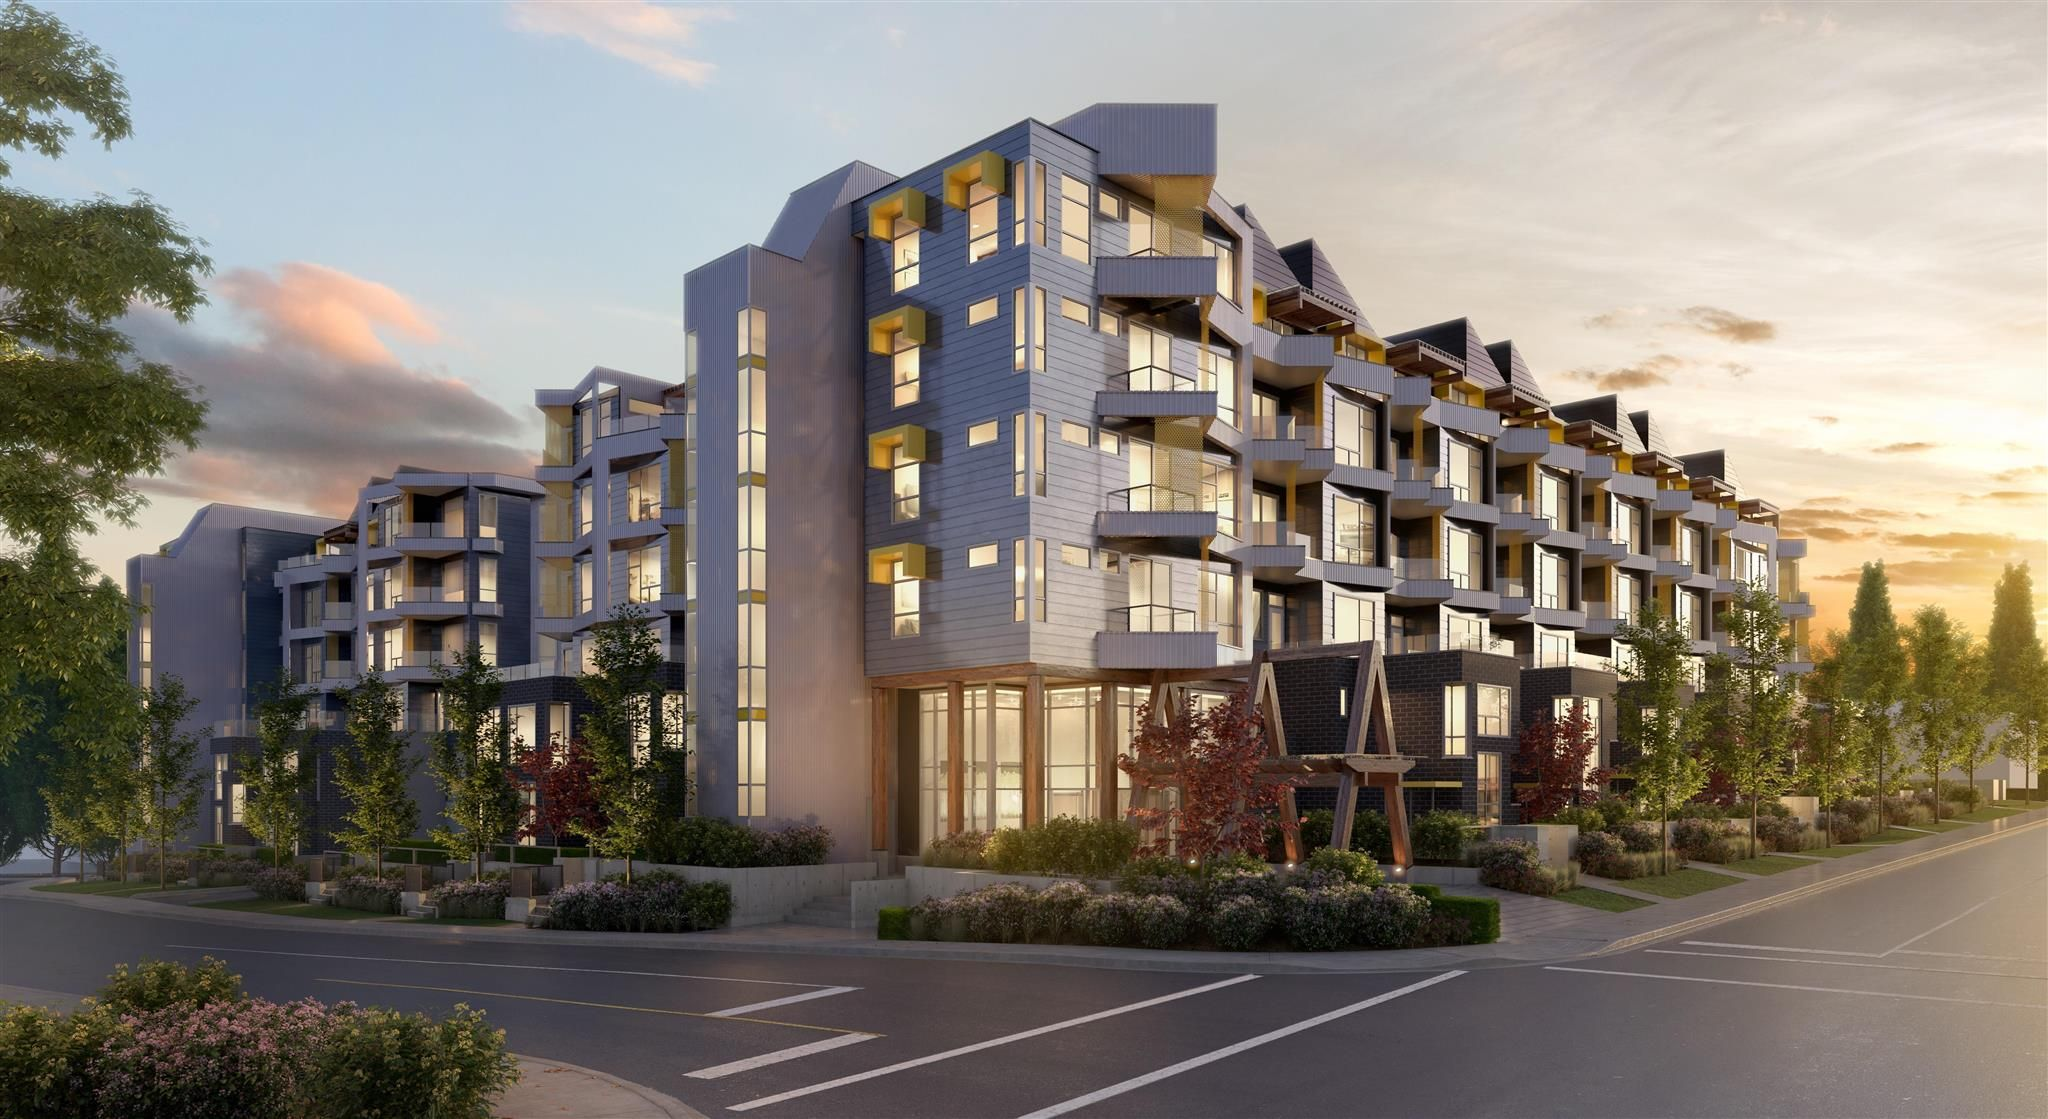 """Main Photo: 609 32838 LANDEAU Place in Abbotsford: Central Abbotsford Condo for sale in """"Court"""" : MLS®# R2622400"""